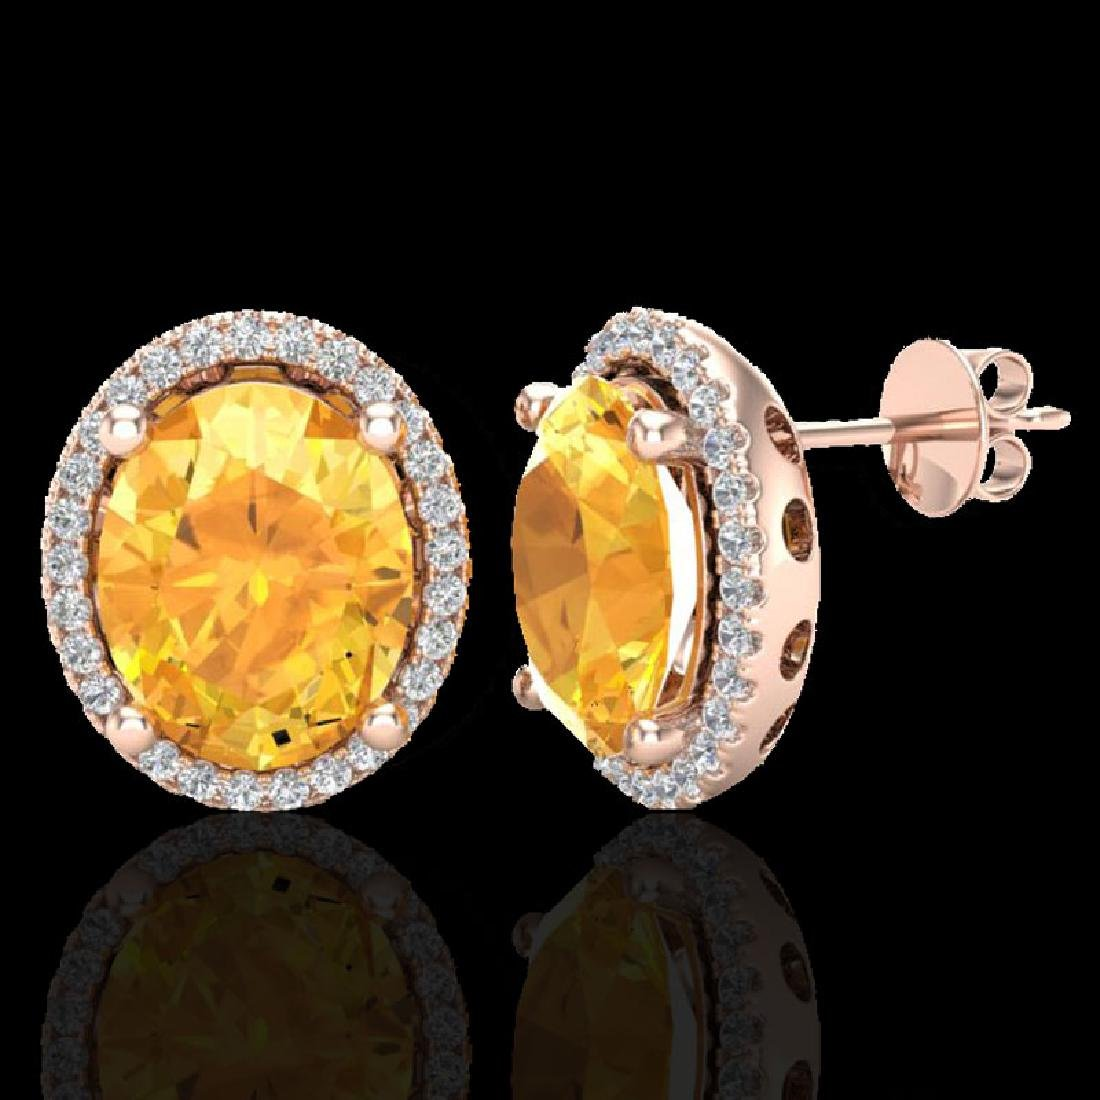 5 CTW Citrine & Micro Pave VS/SI Diamond Earrings Halo - 2